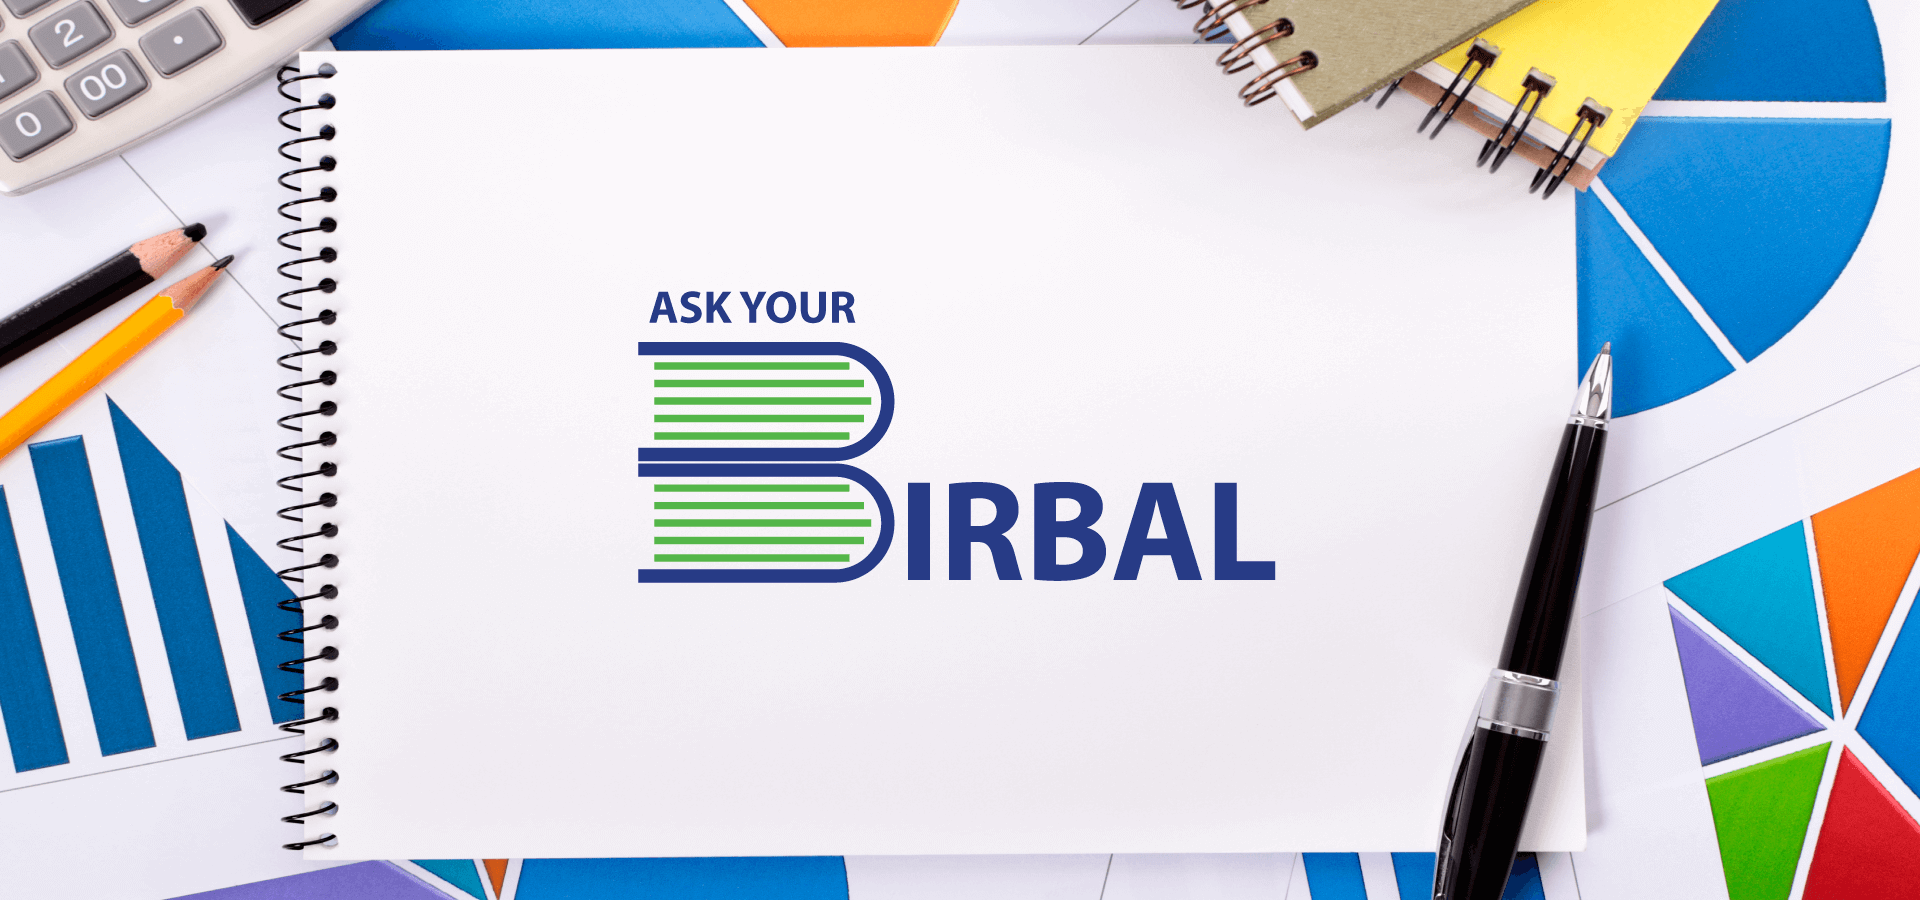 Portal Development for Ask Your Birbal